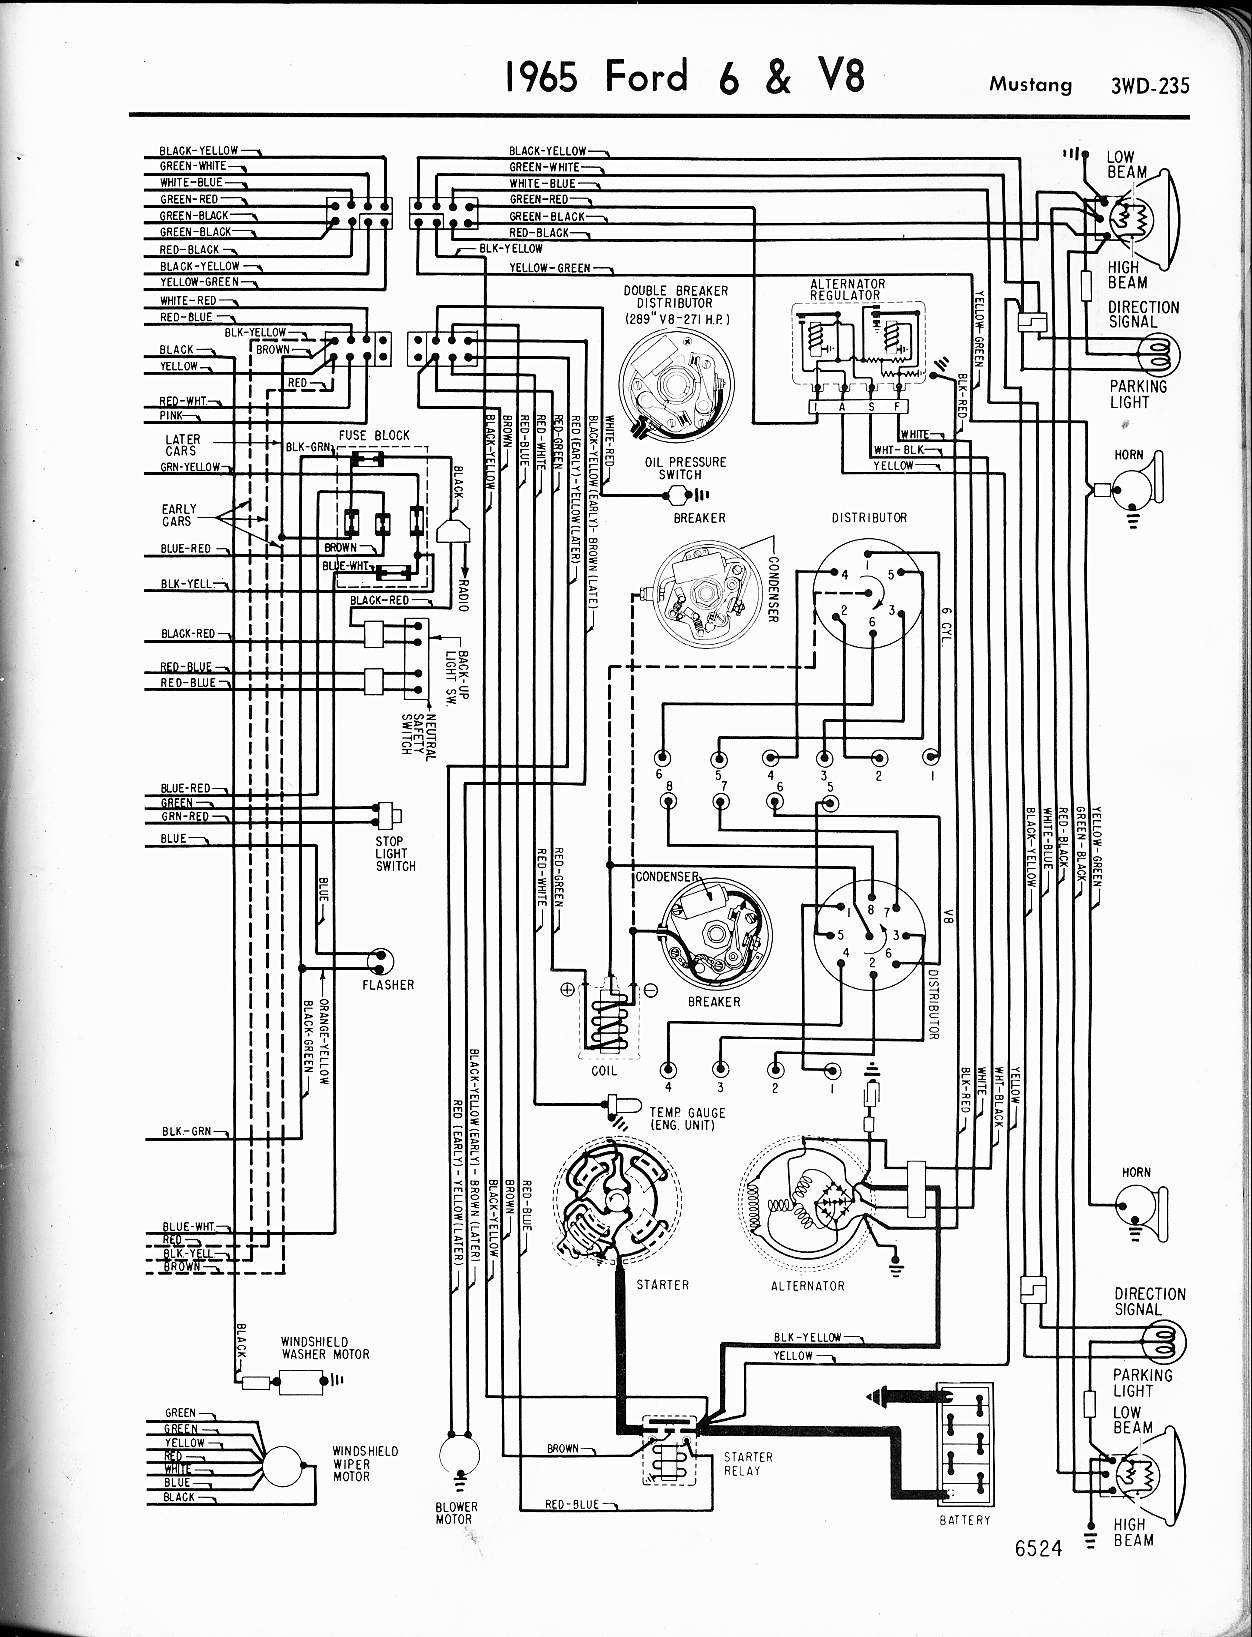 wiring diagram for a 1970 ford mustang the wiring diagram ford diagrams wiring diagram